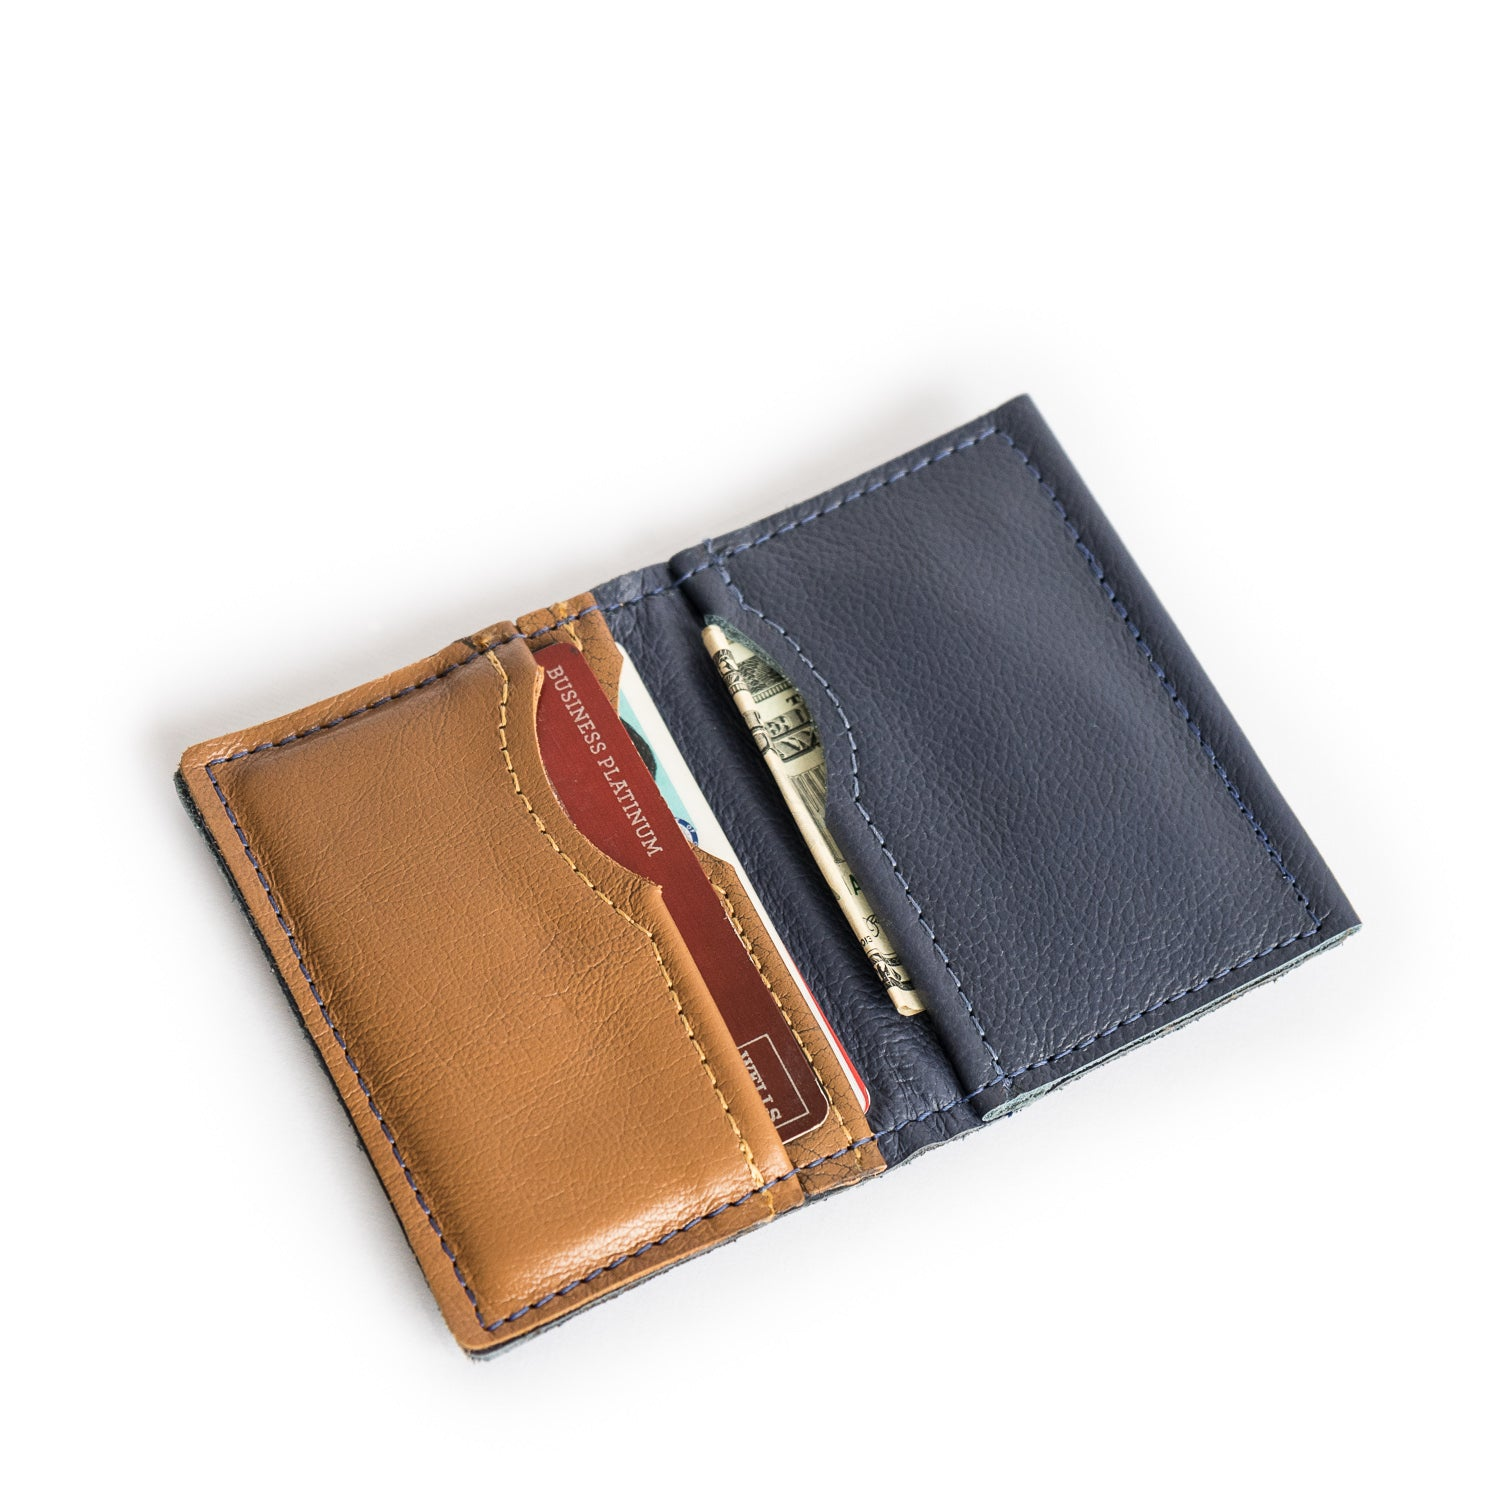 In Flight LUV Card Wallet